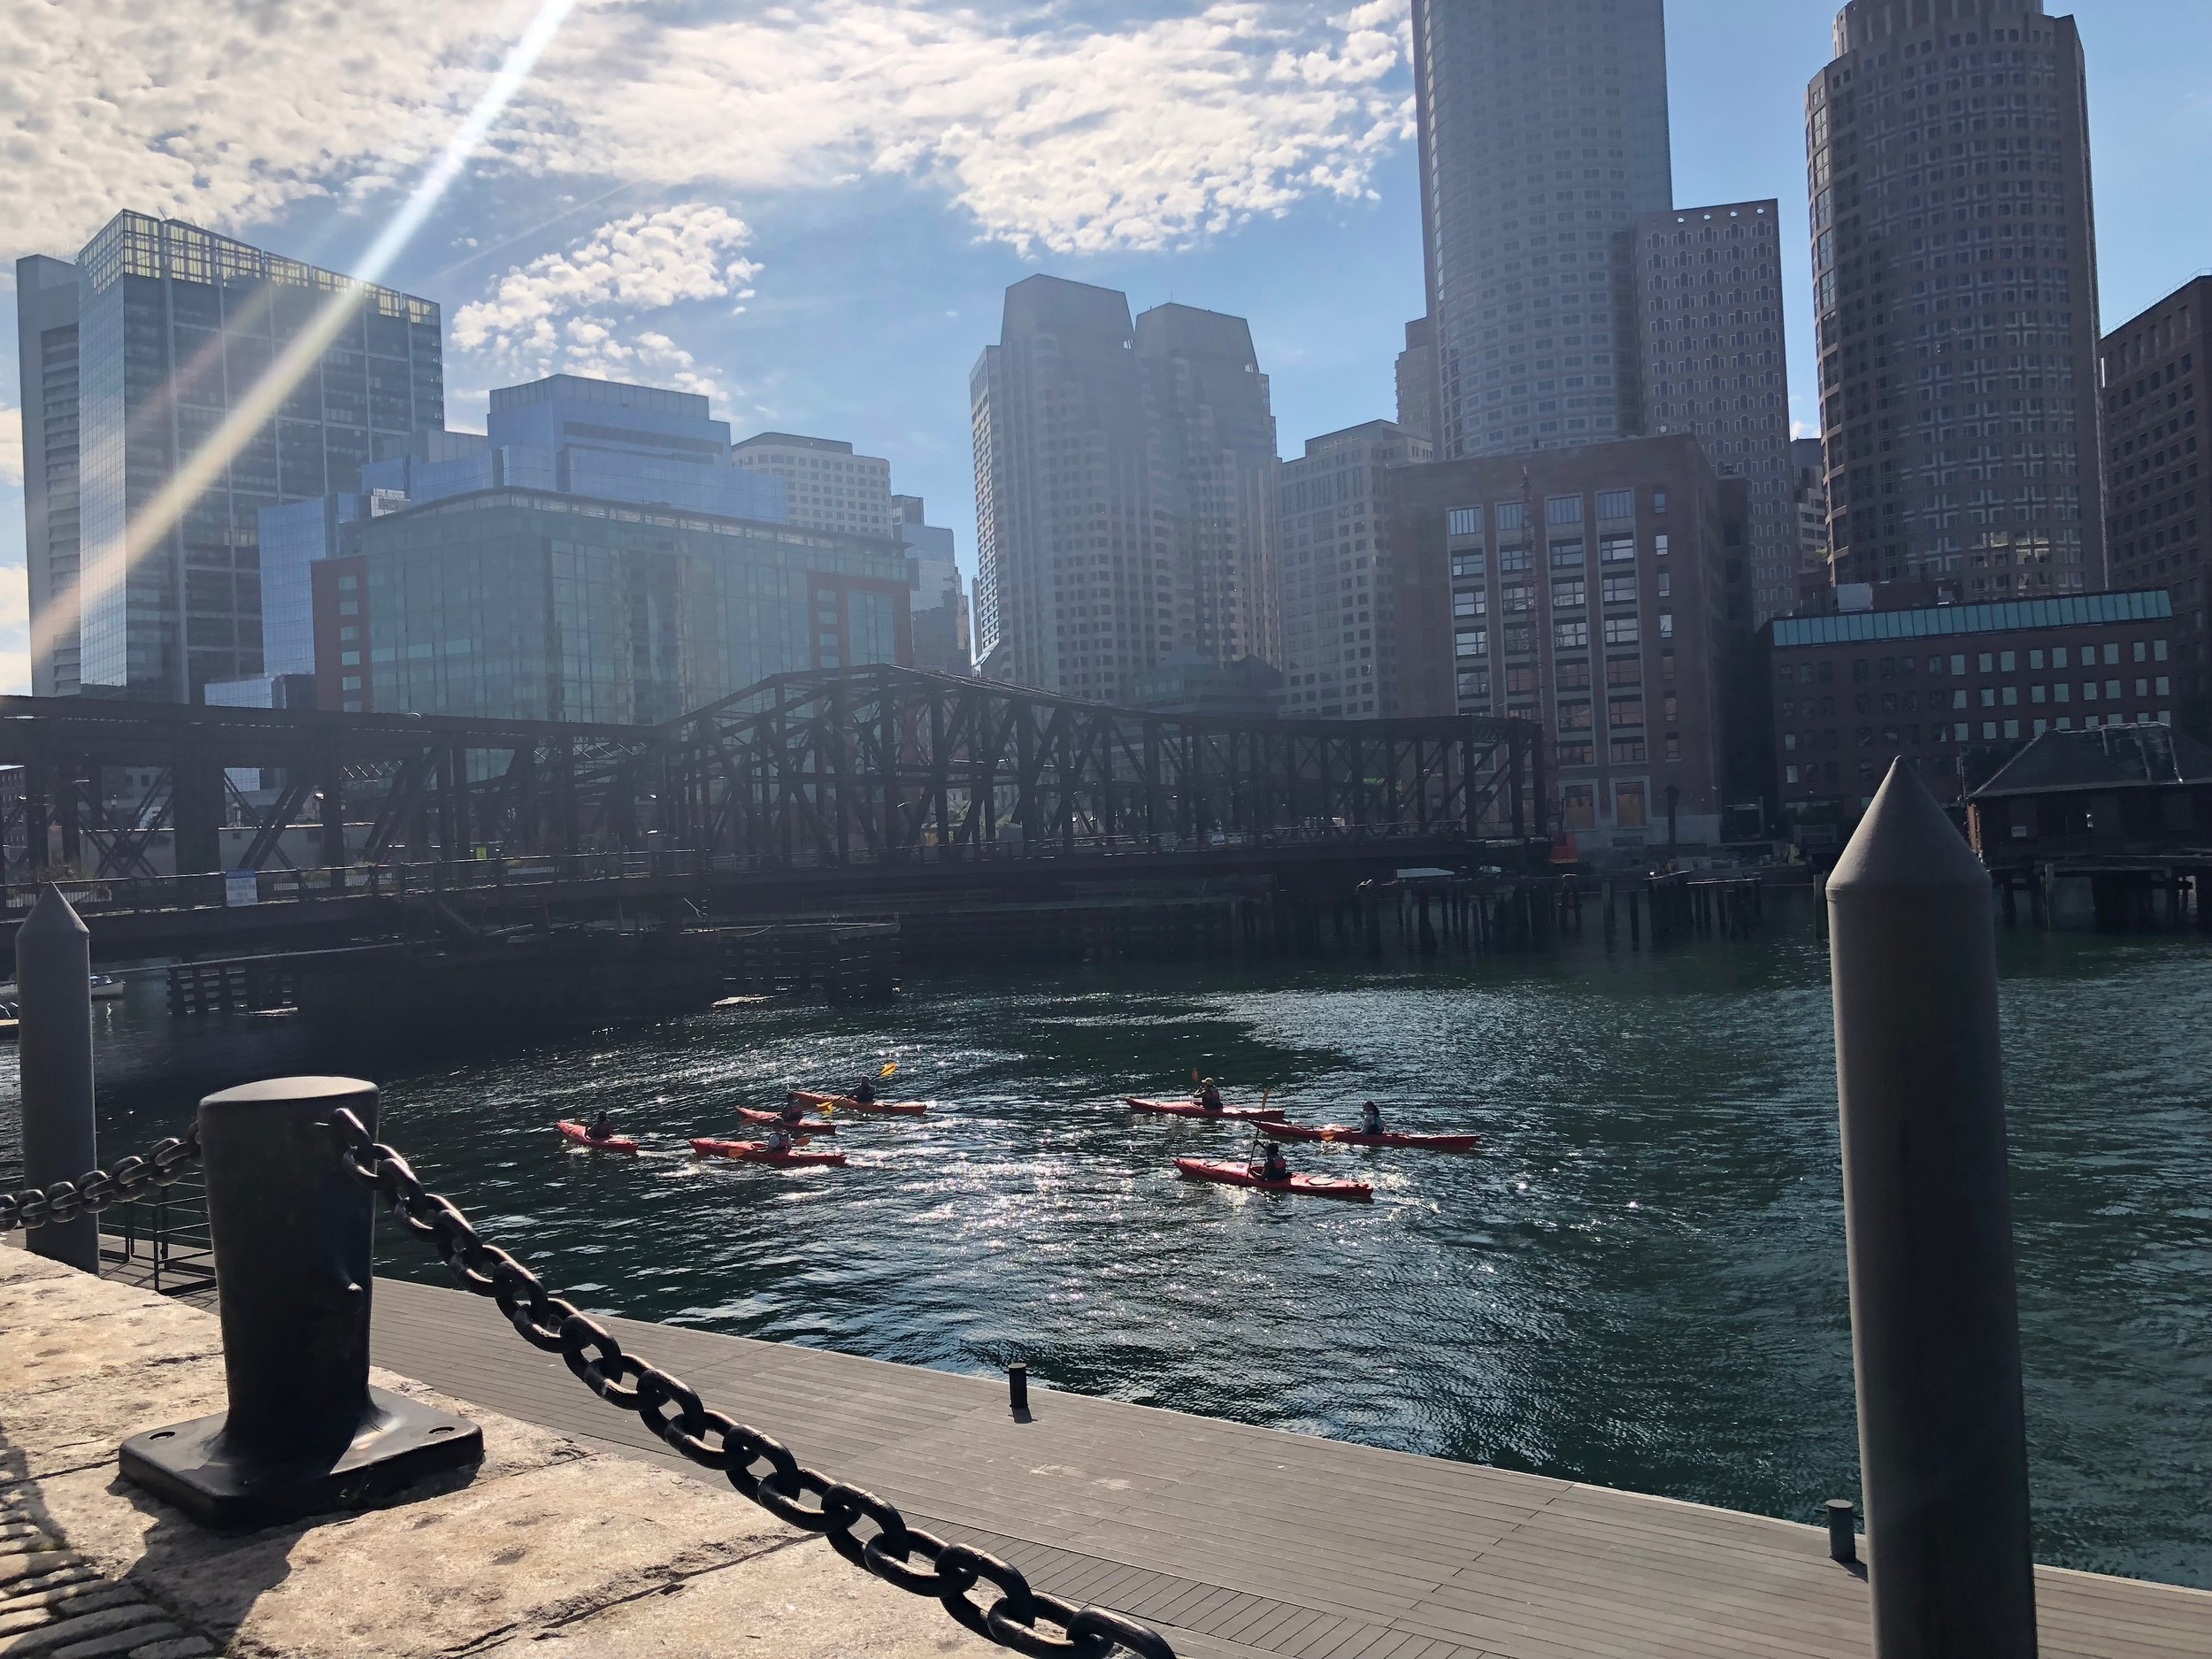 """Cohort 1 went on a kayaking excursion in Boston Harbor, a """"spark experience"""" that became a touchpoint in conversations about curriculum planning throughout the year."""